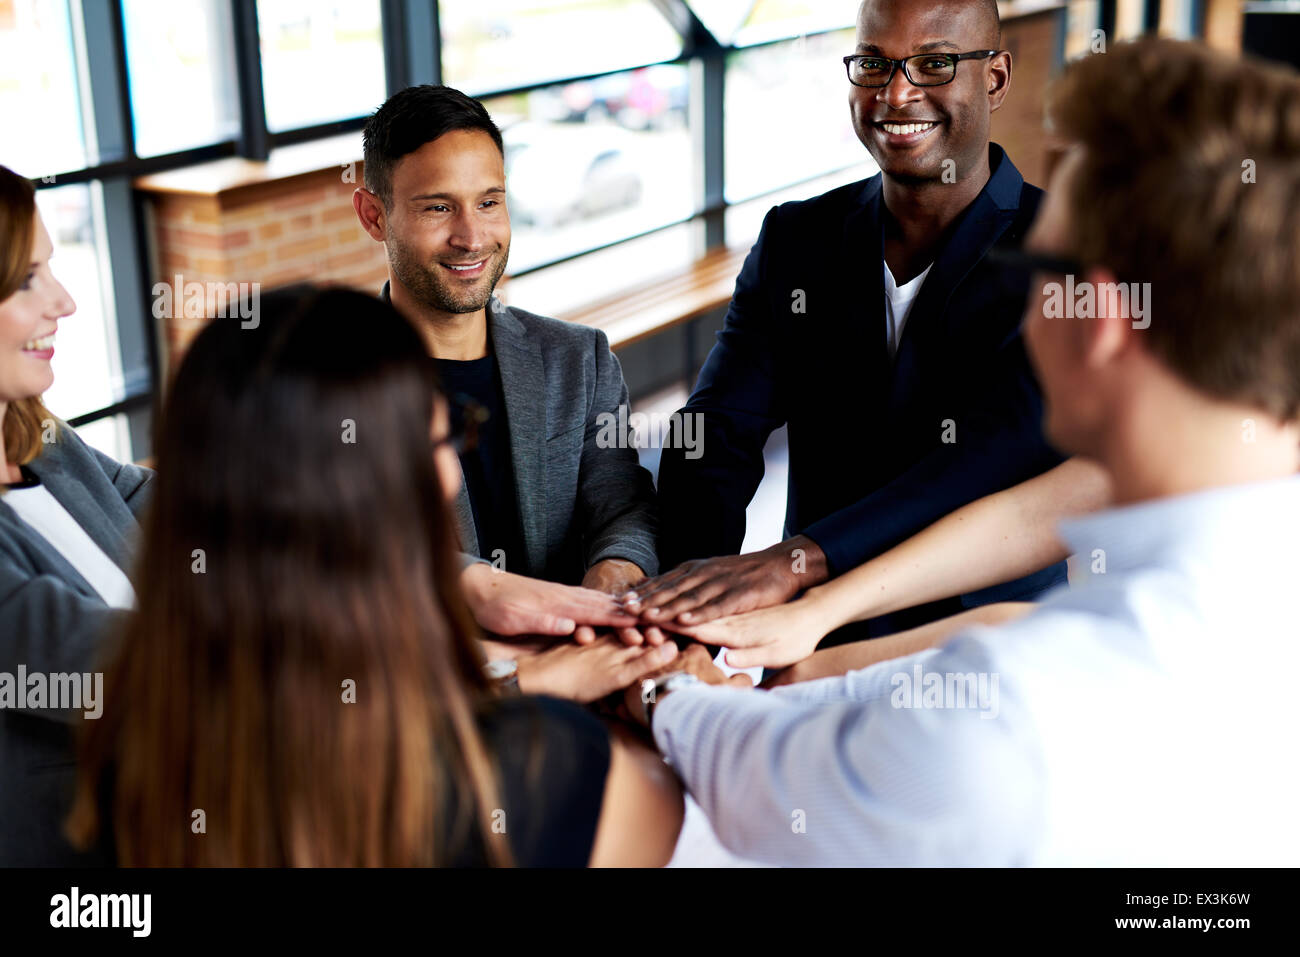 Group of young executives smiling and standing together with hands together - Stock Image